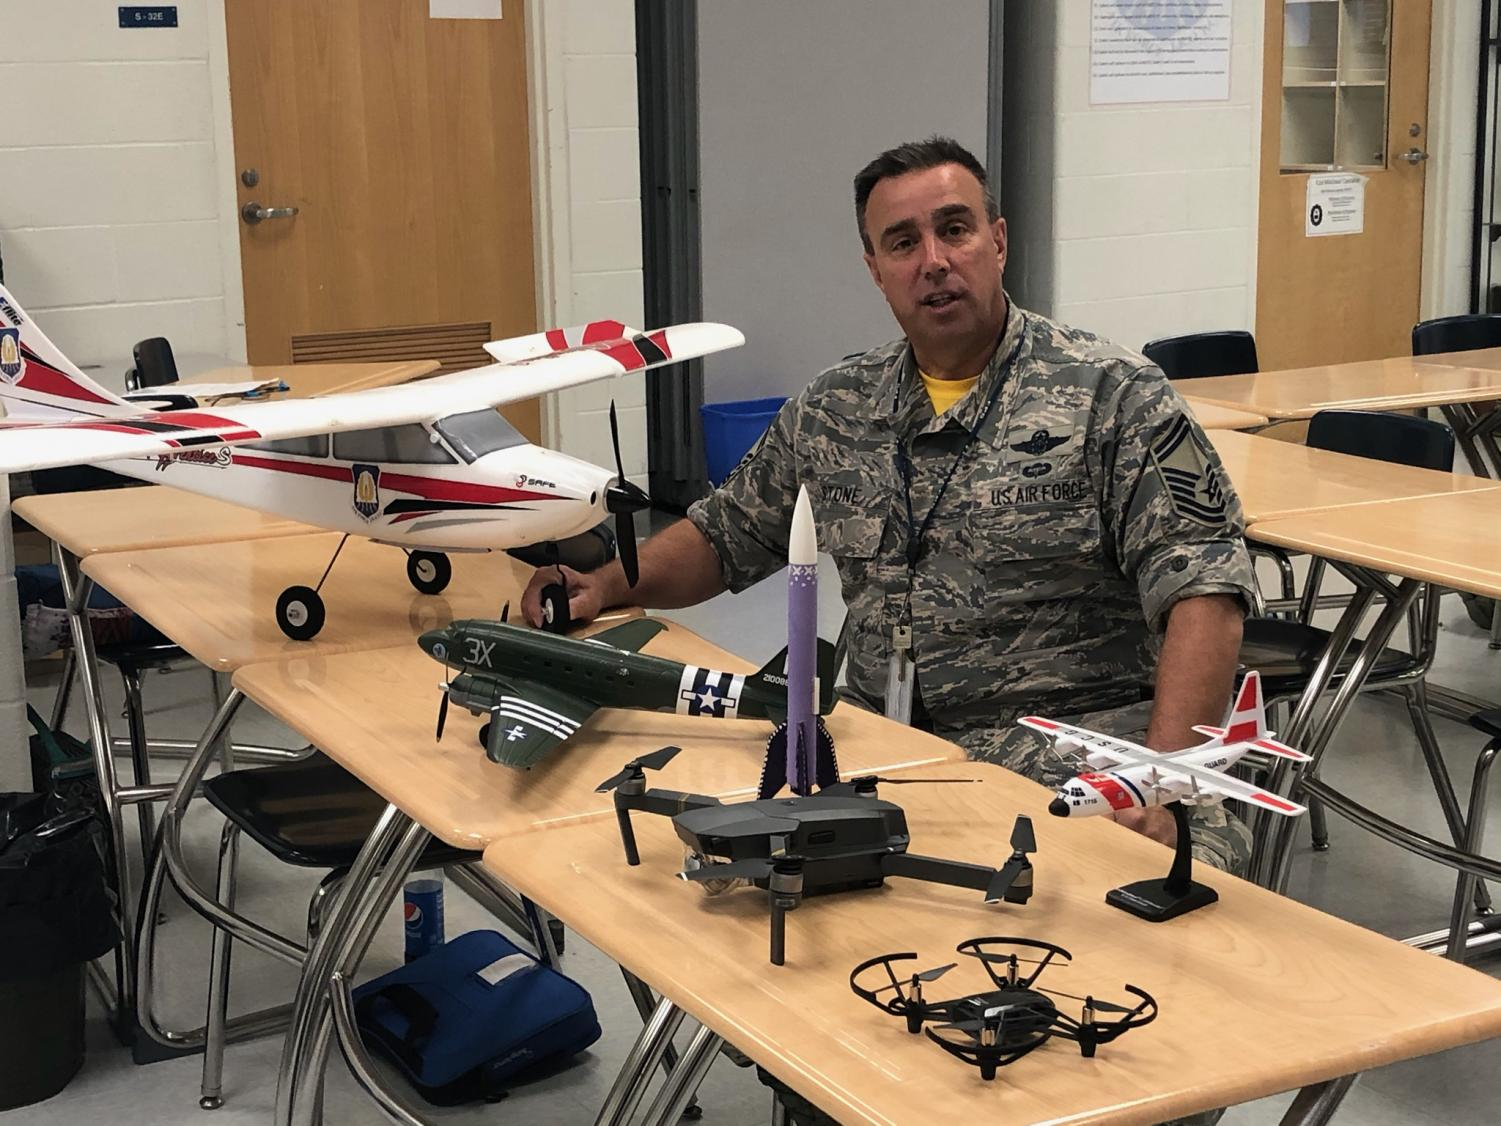 Senior Master Sergeant Stone preparing to teach the Aviation course at Kenwood.